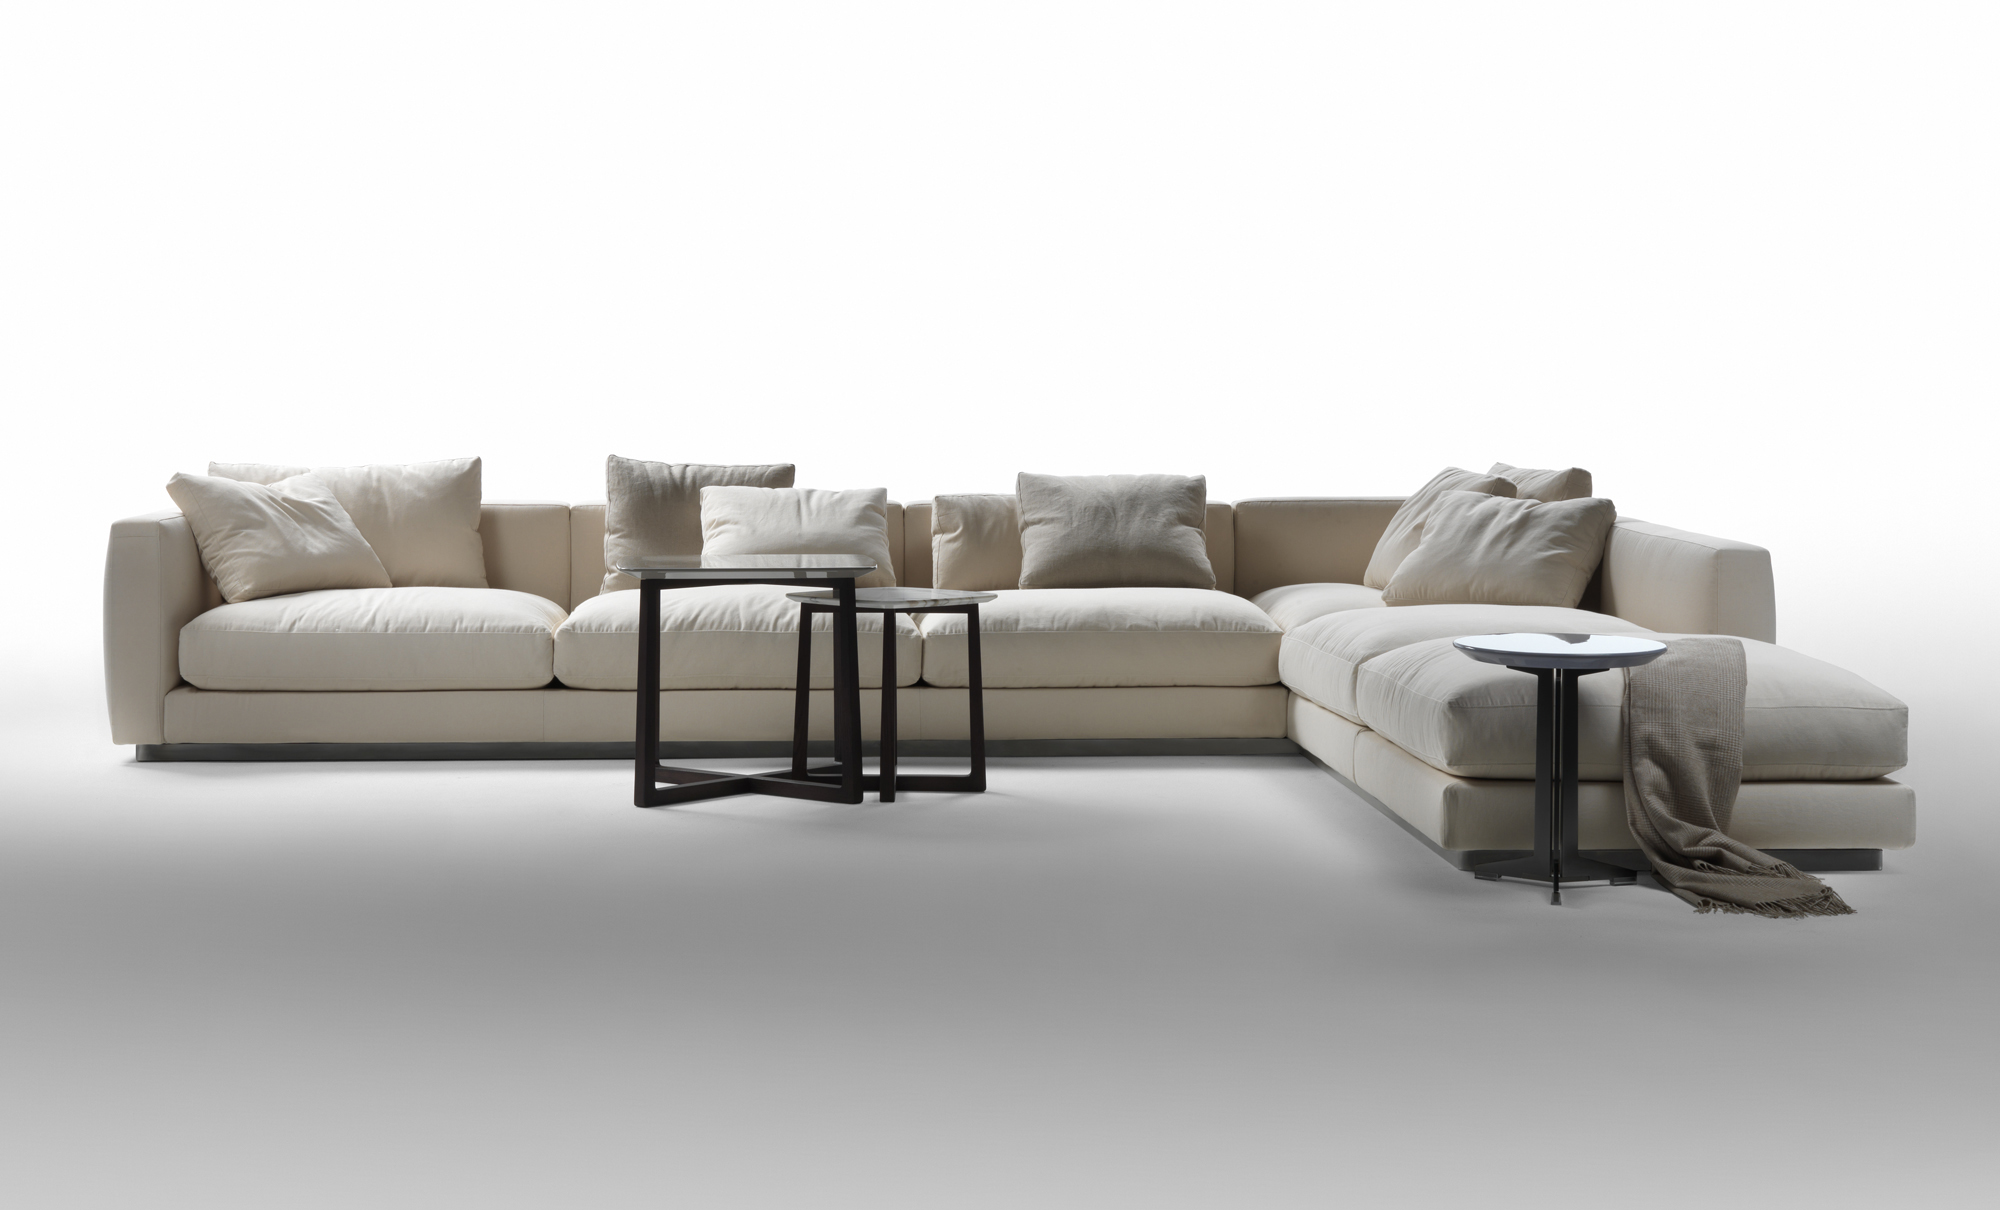 Couches And Sofas Pleasure Sofas Fanuli Furniture